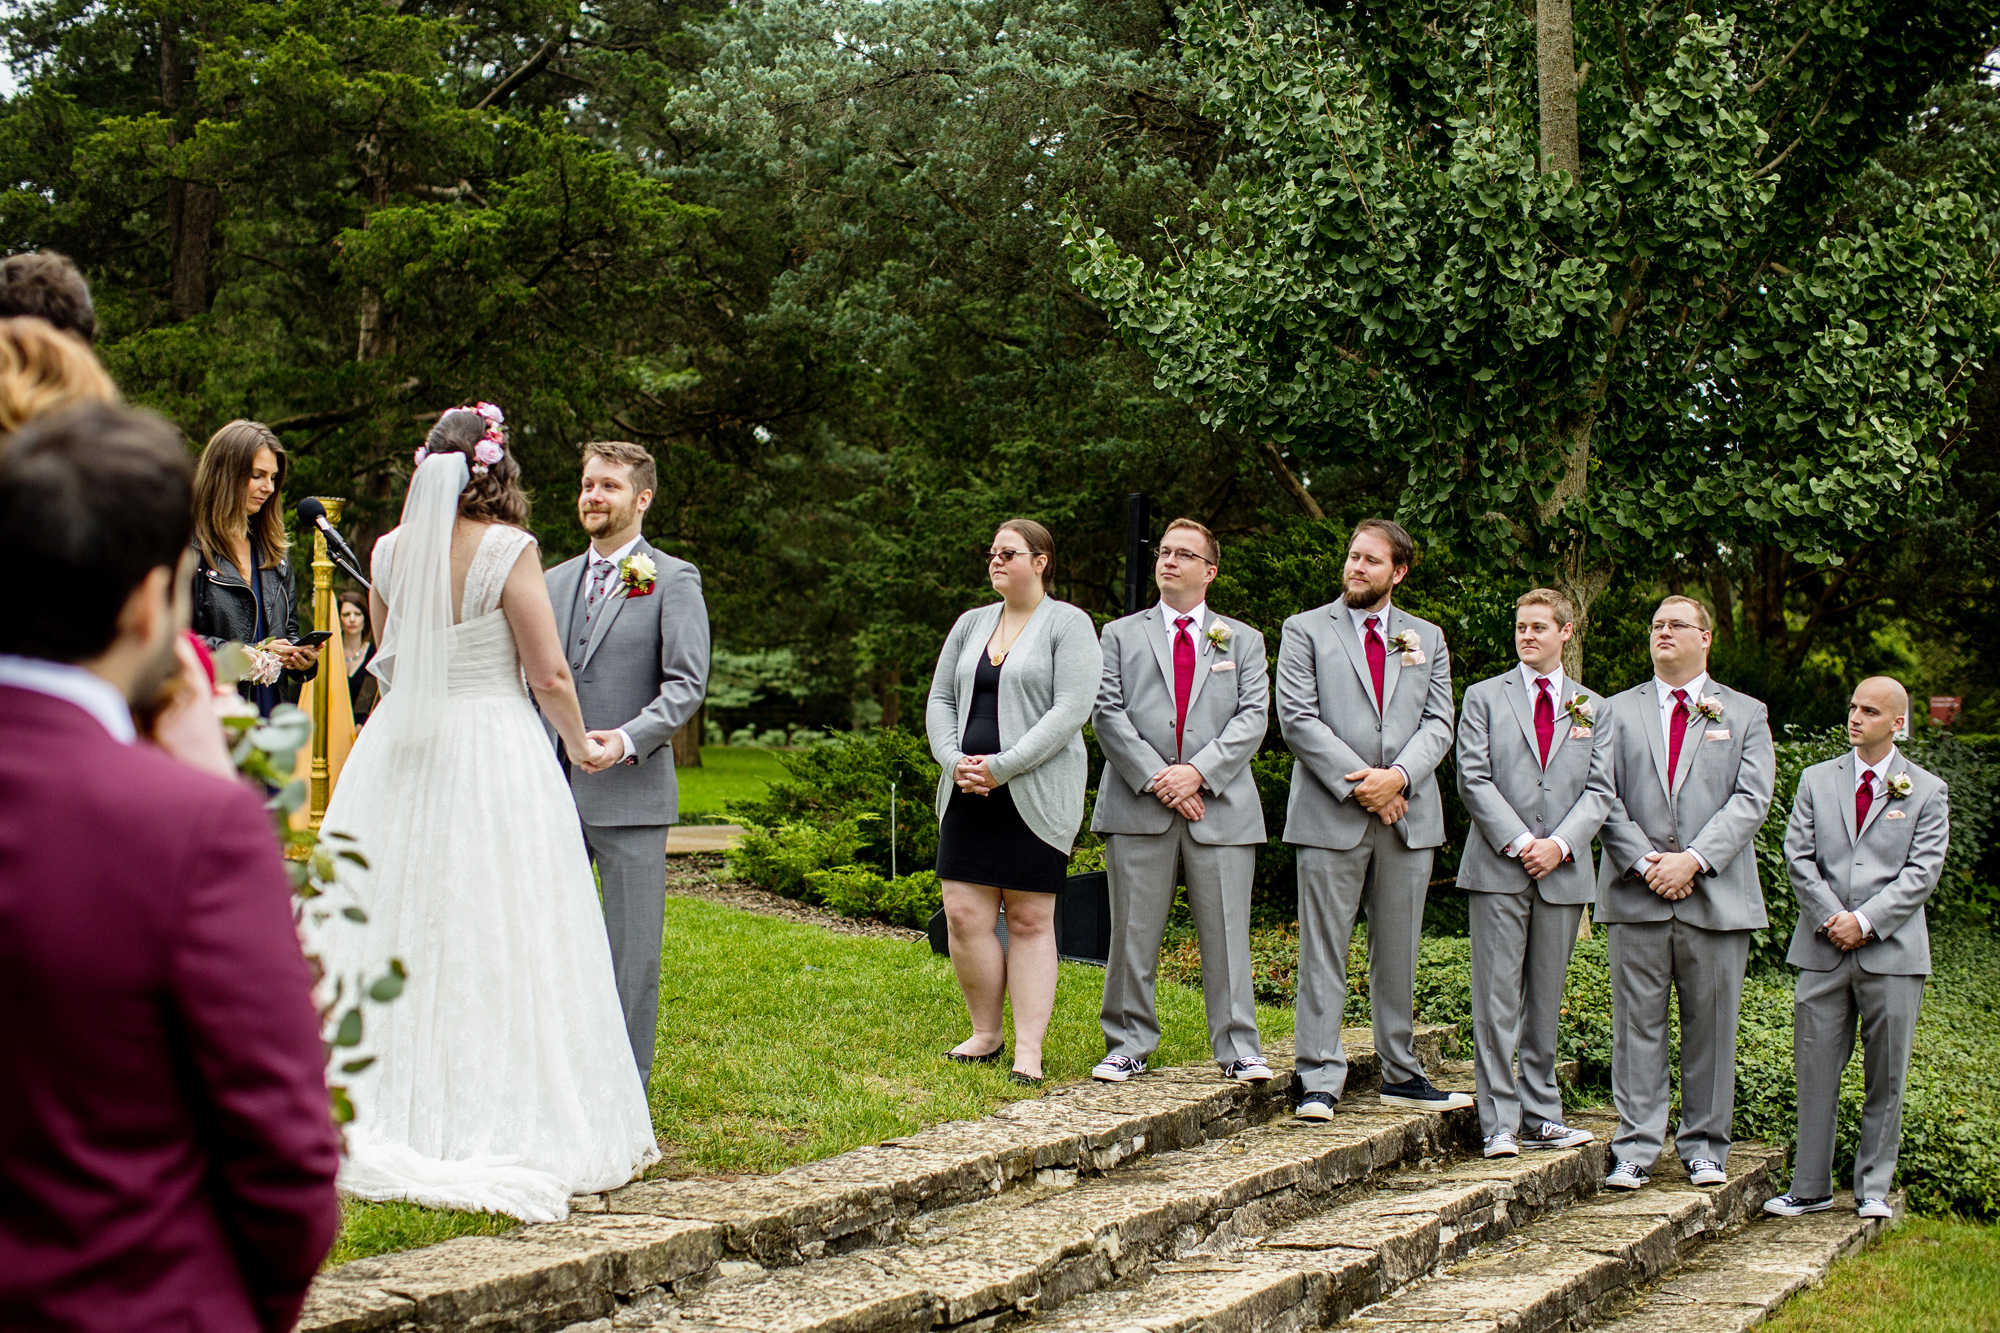 Seriously_Sabrina_Photography_Lisle_Illinois_Morton_Arboretum_Wedding_Day_Gowen68.jpg